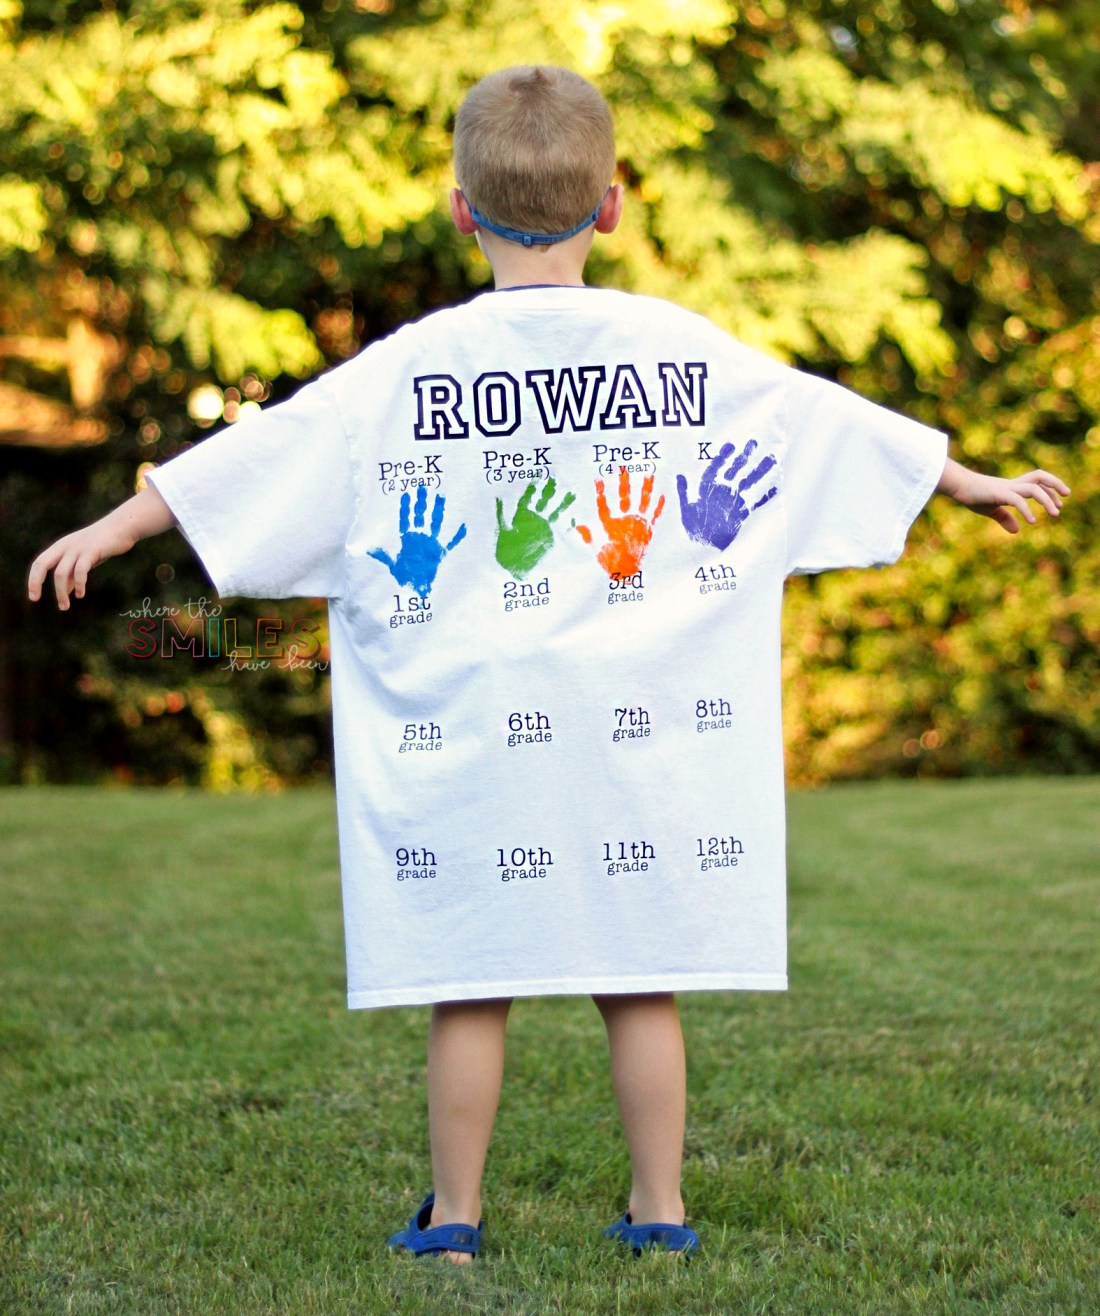 Large white t-shirt on child with painted handprints